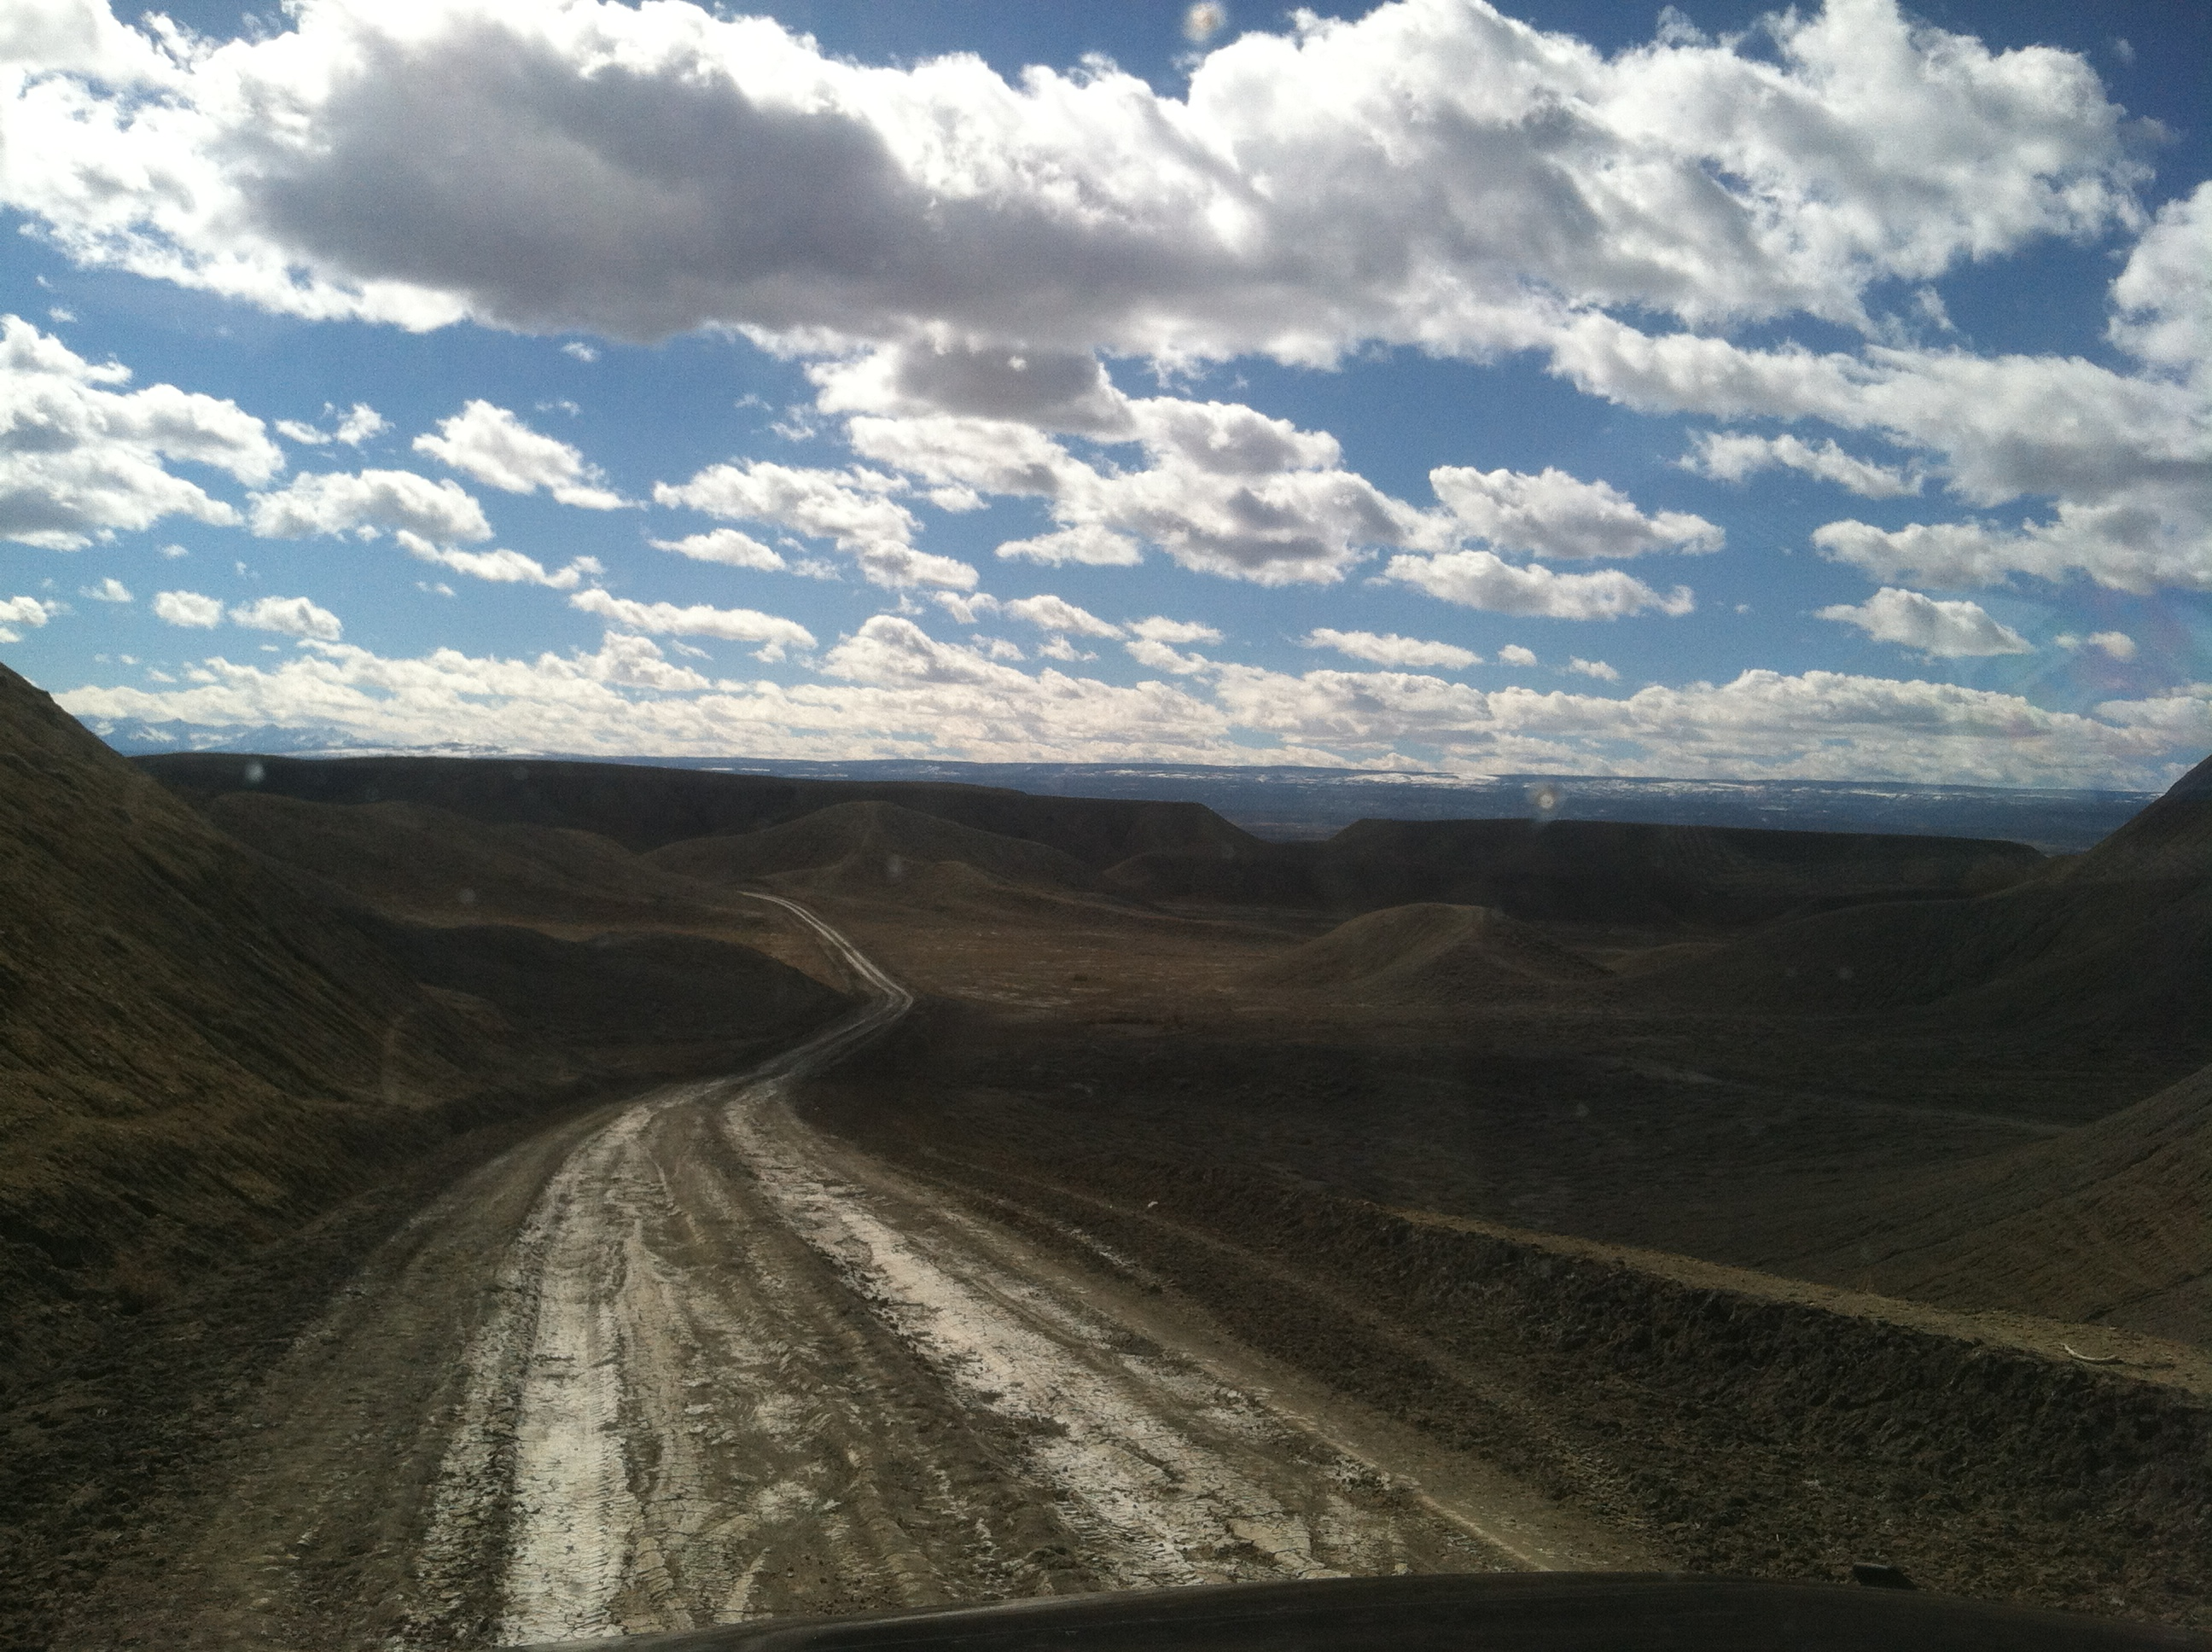 Peach Valley road: was fast and fun. I ♥ my Jeep!